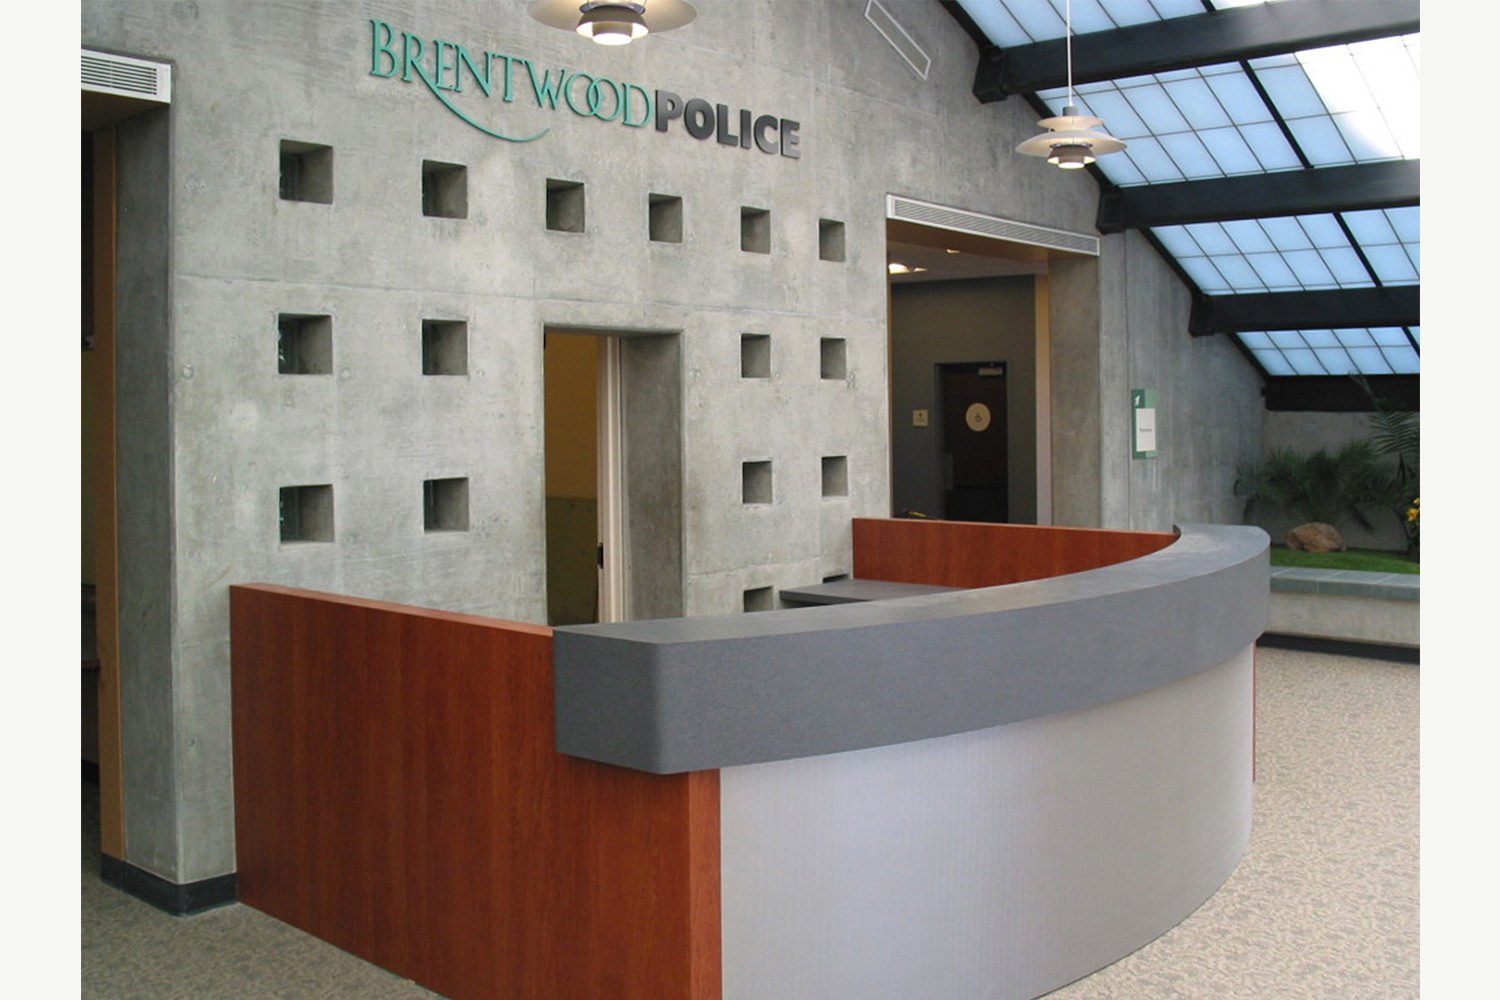 Projects_1500_Brentwood-Police_04.jpg